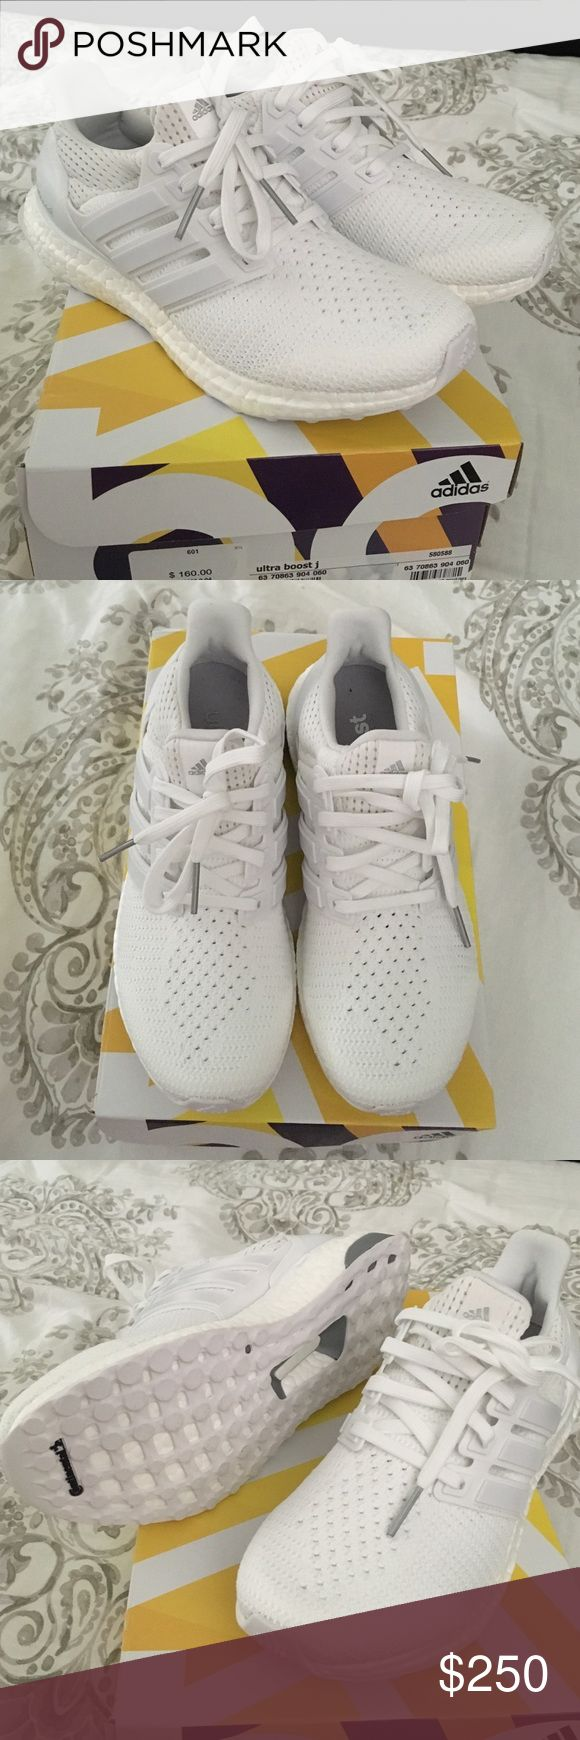 Adidas Ultra Boost All White Triple White 3.0 Mens BA8841 Size: 7 13